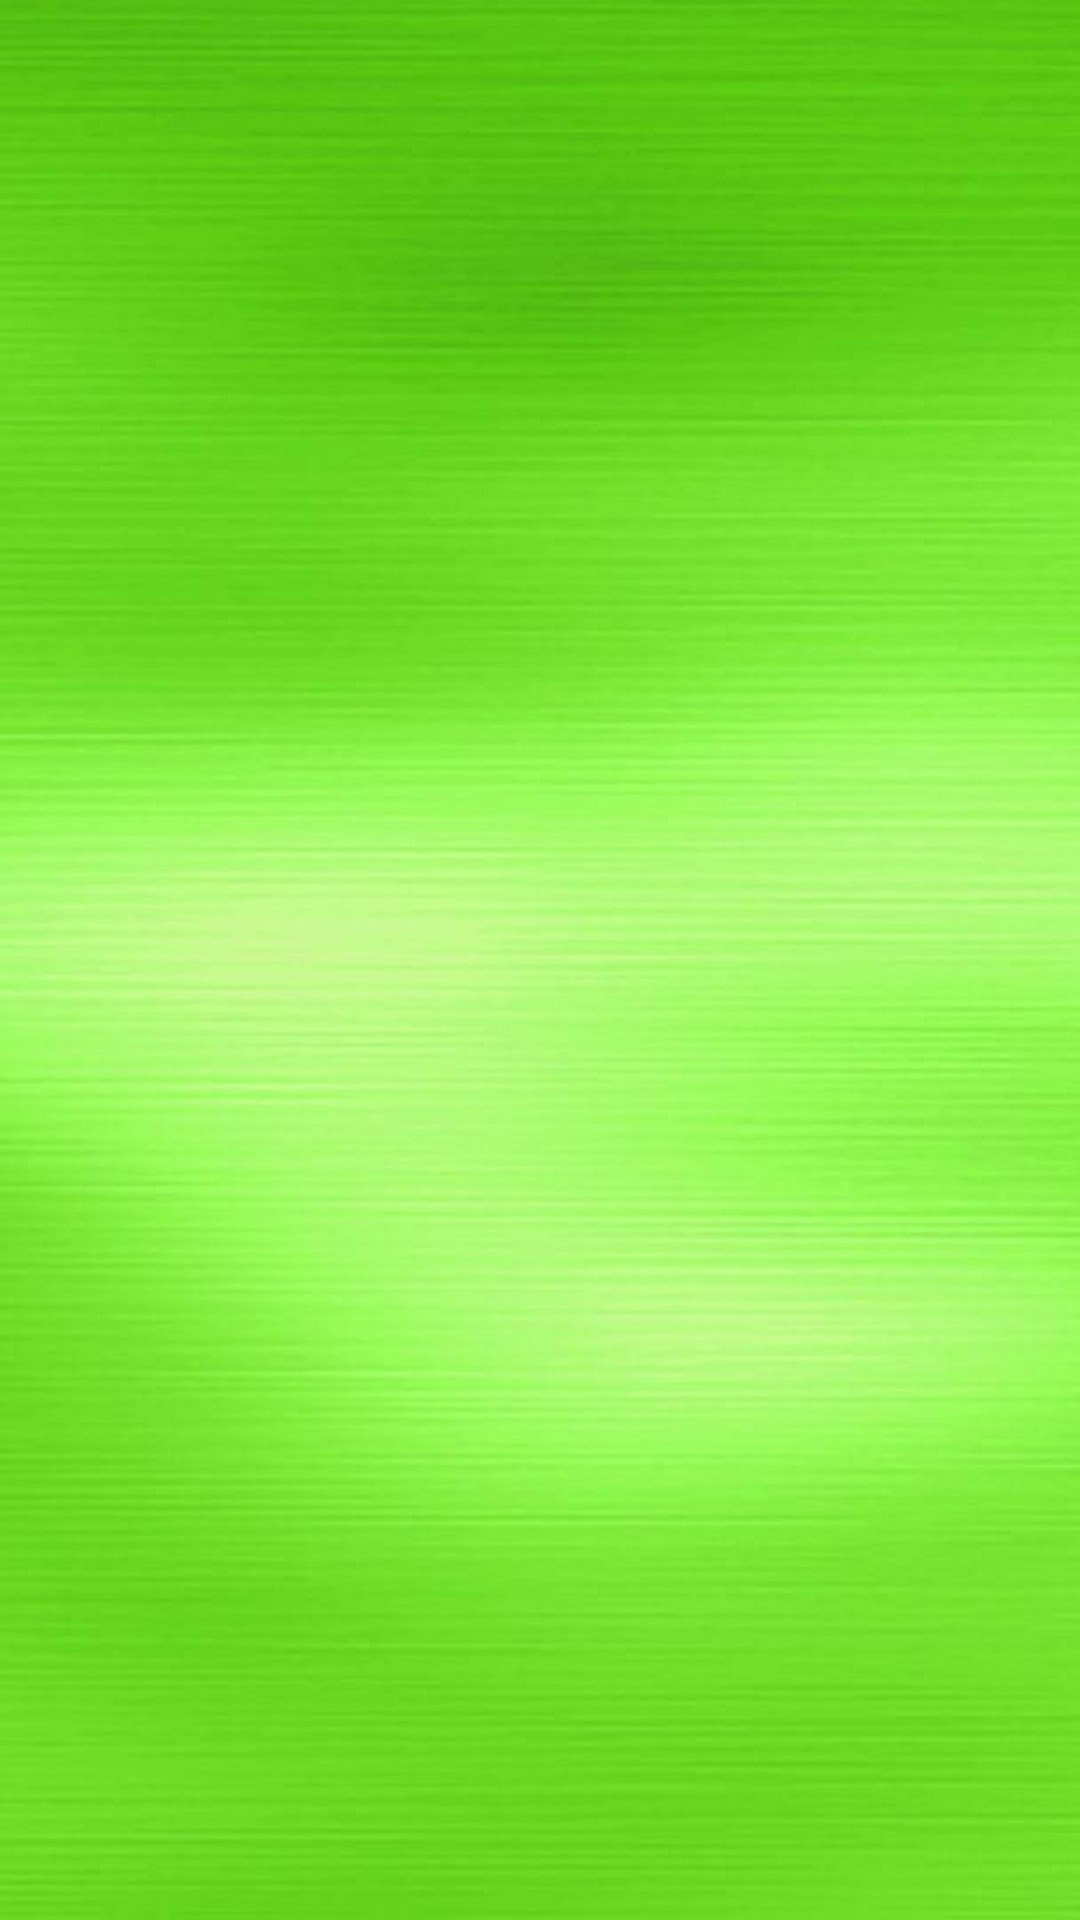 Android Wallpaper Hd Light Green 2020 Android Wallpapers